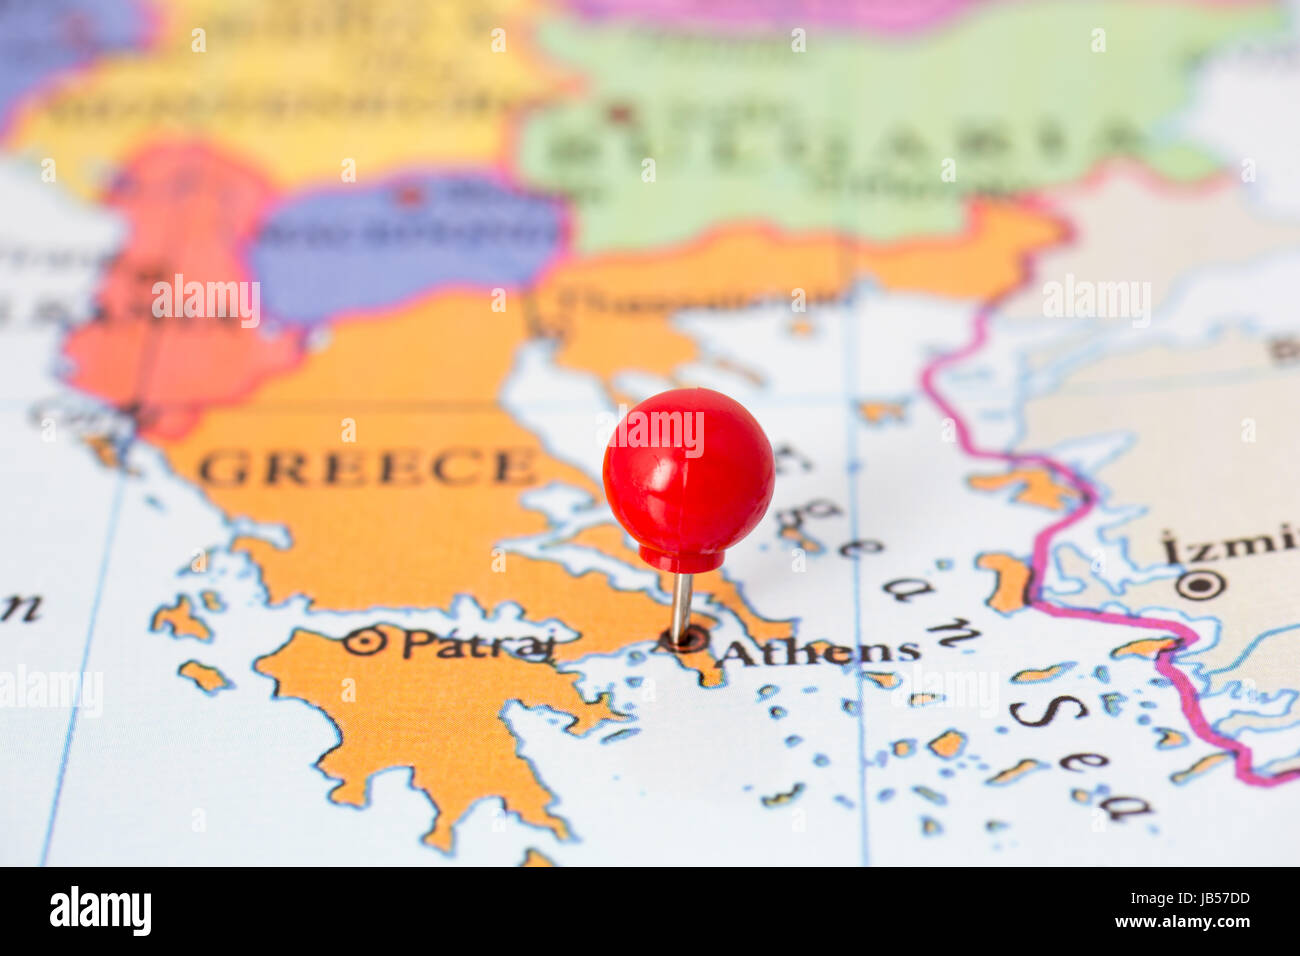 Round Red Thumb Tack Pinched Through City Of Athens On Greece Map